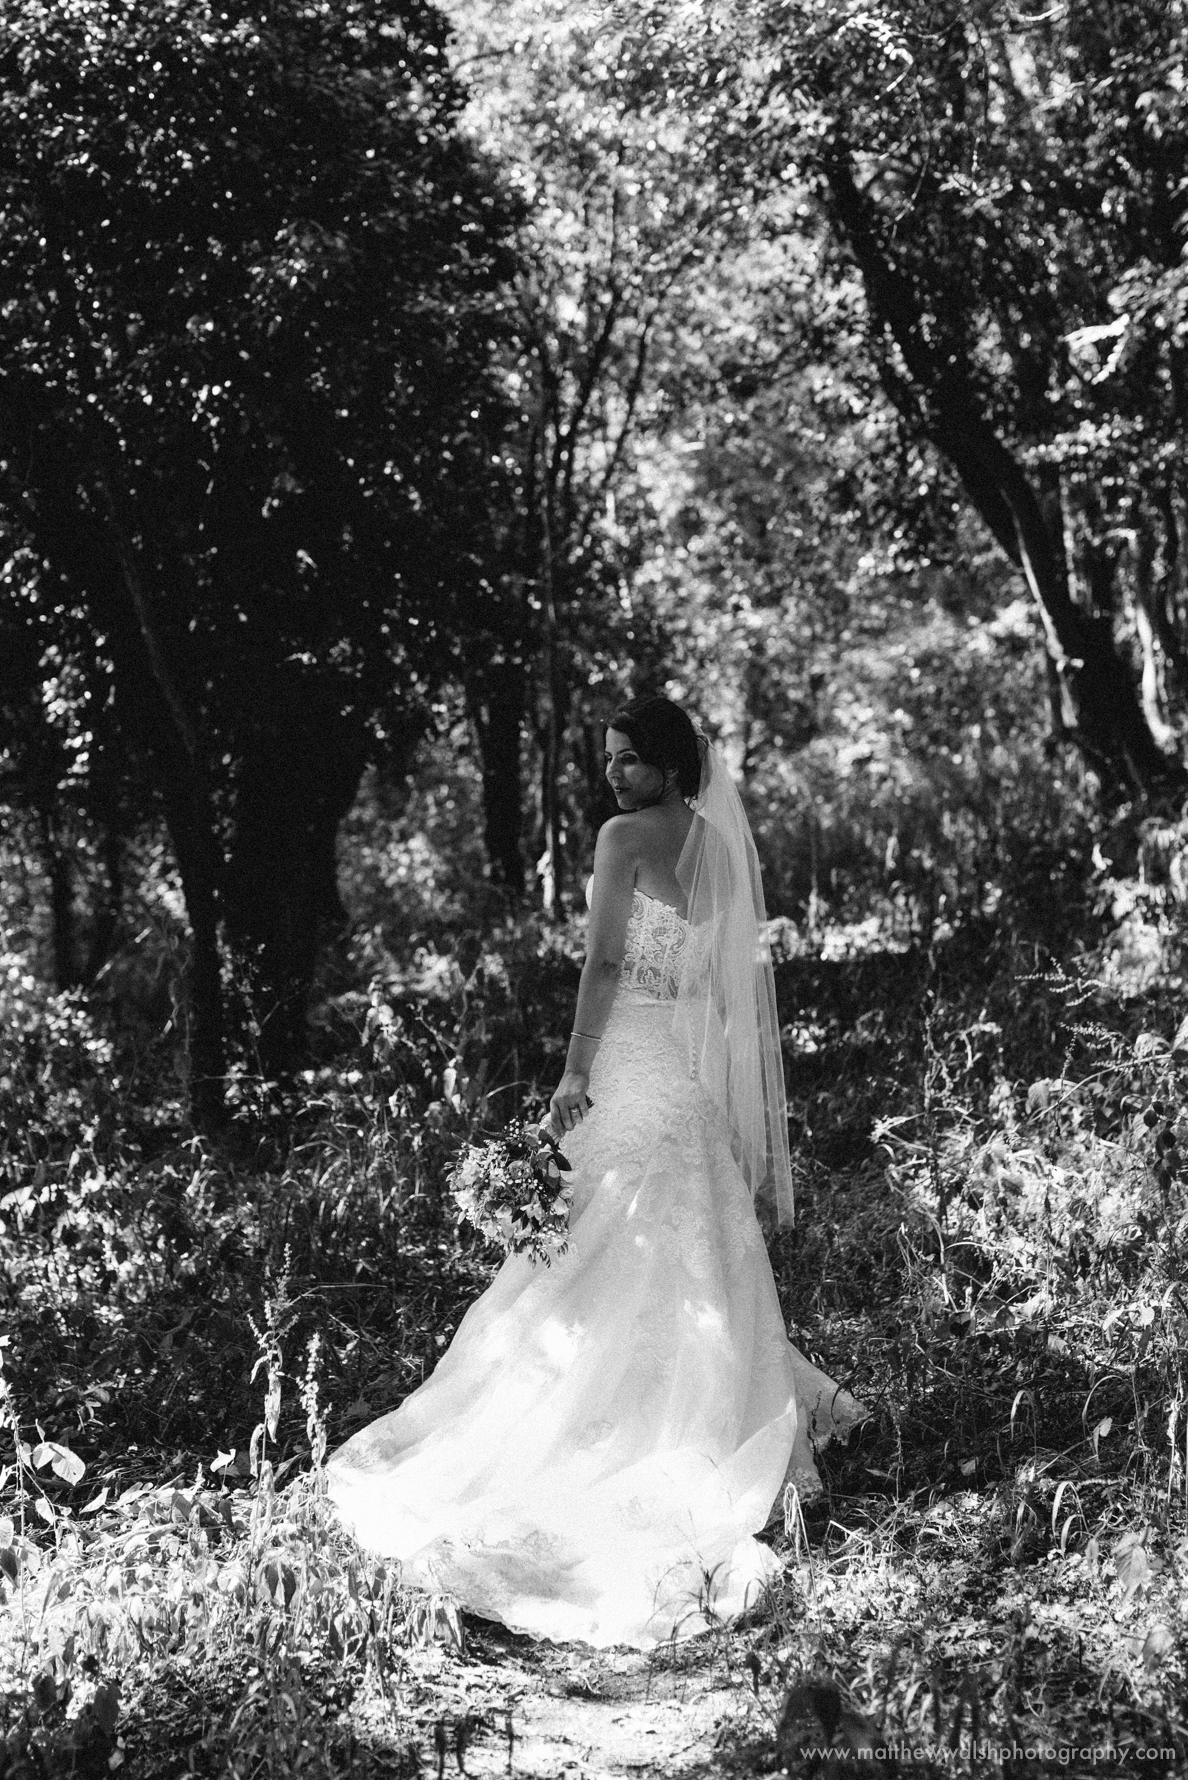 The back of the brides dress as she is framed by a natural backdrop all in wonderful black and white photography